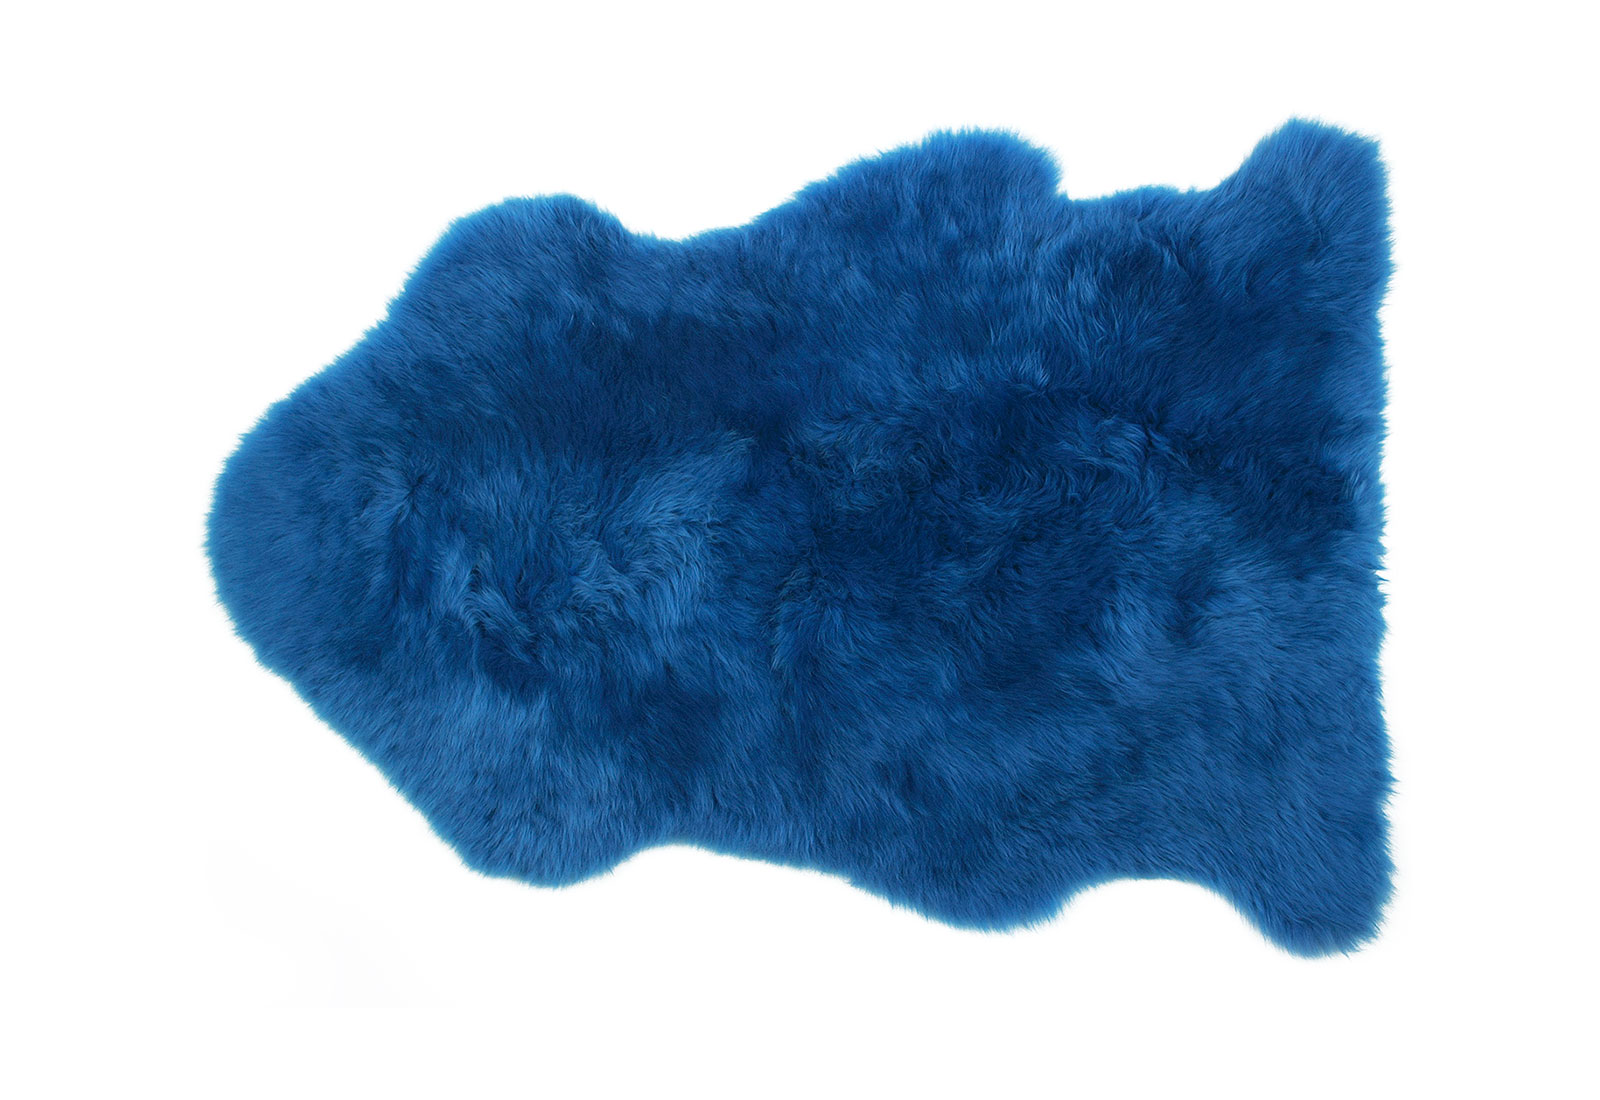 Baltic Blue Sheepskin Rug